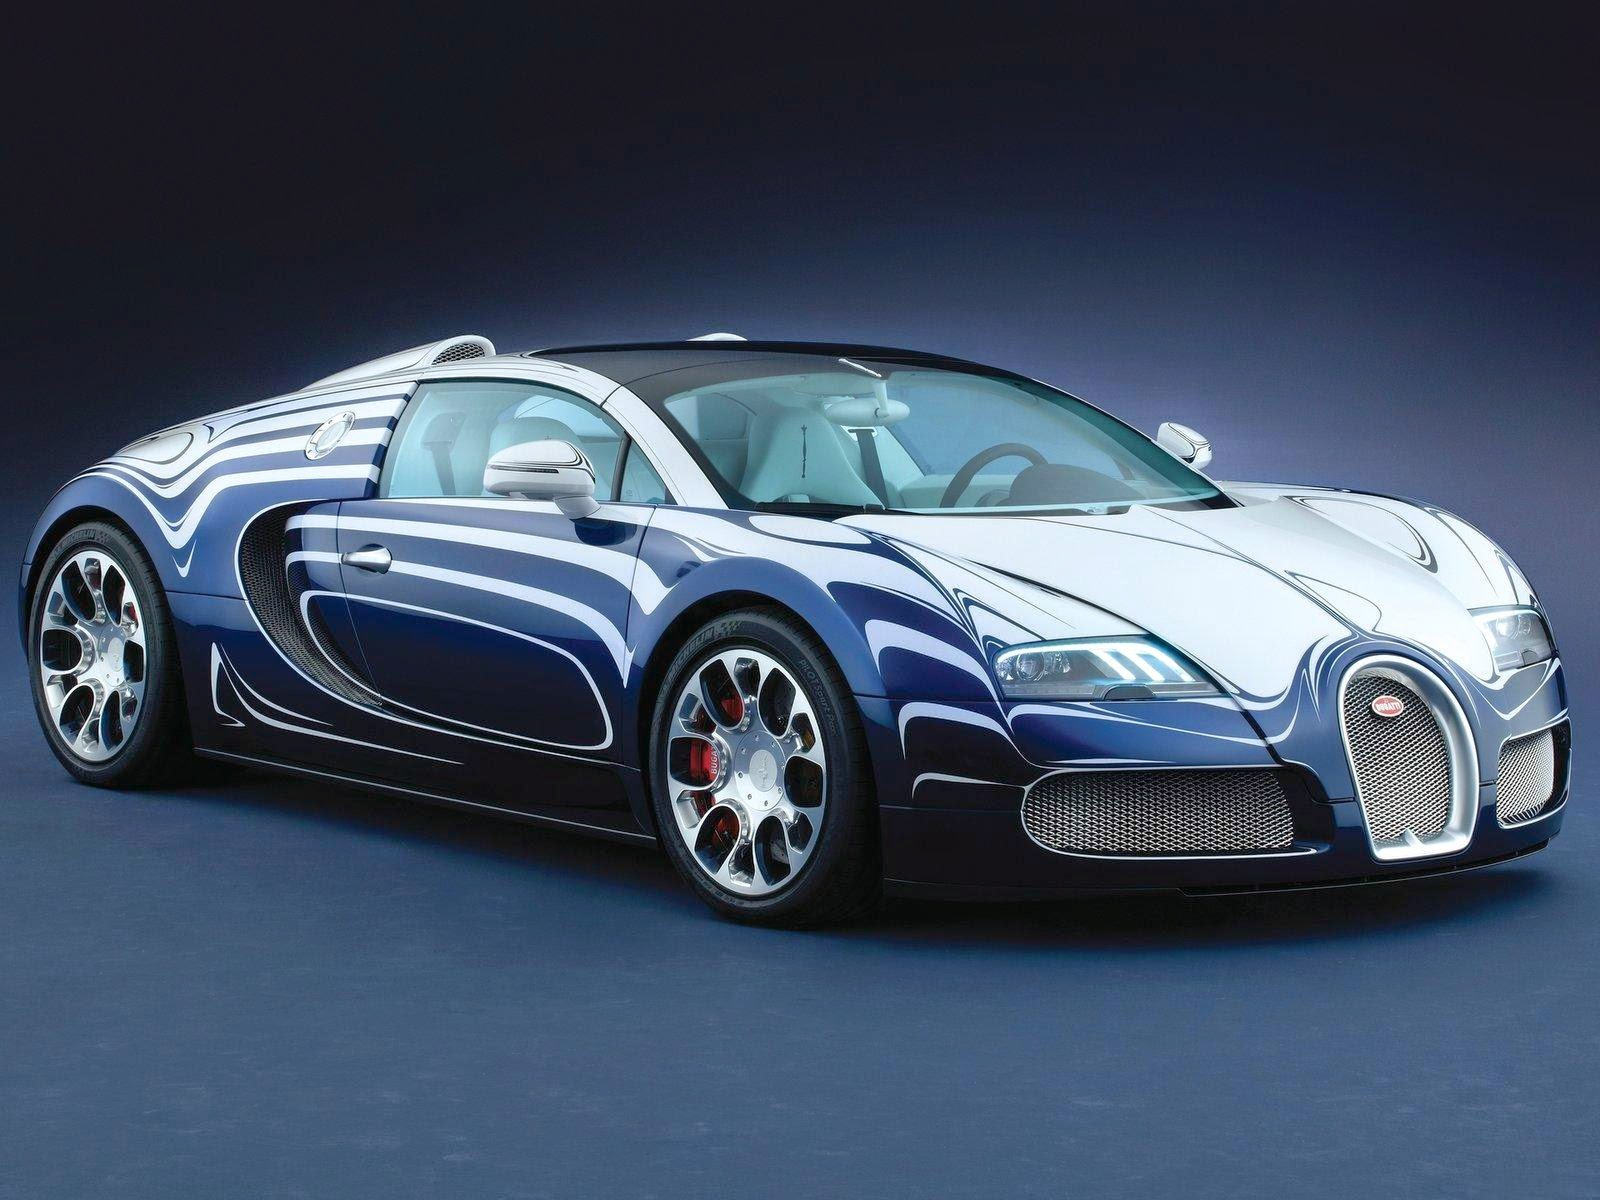 bugatti veyron wallpaper download black bugatti veyron. Black Bedroom Furniture Sets. Home Design Ideas